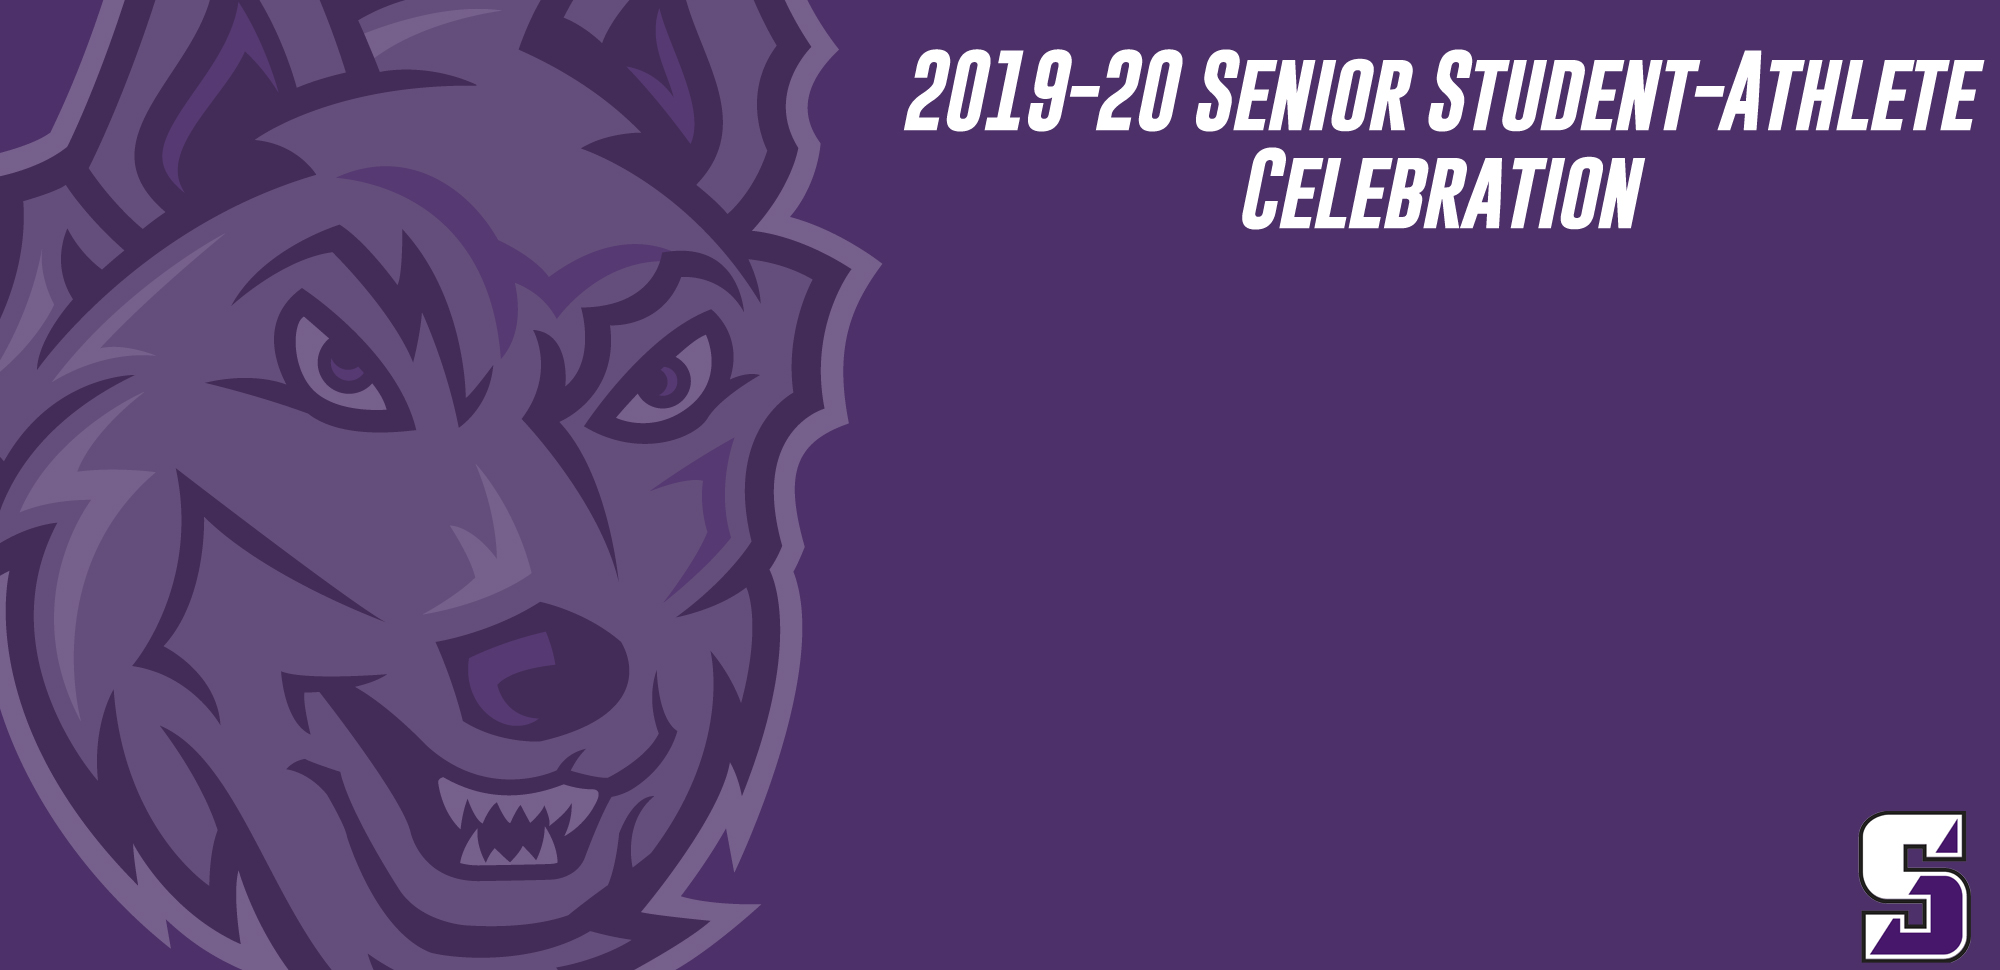 Department of Athletics Hosts Virtual Senior Student-Athlete Celebration, Announces Major Award Winners